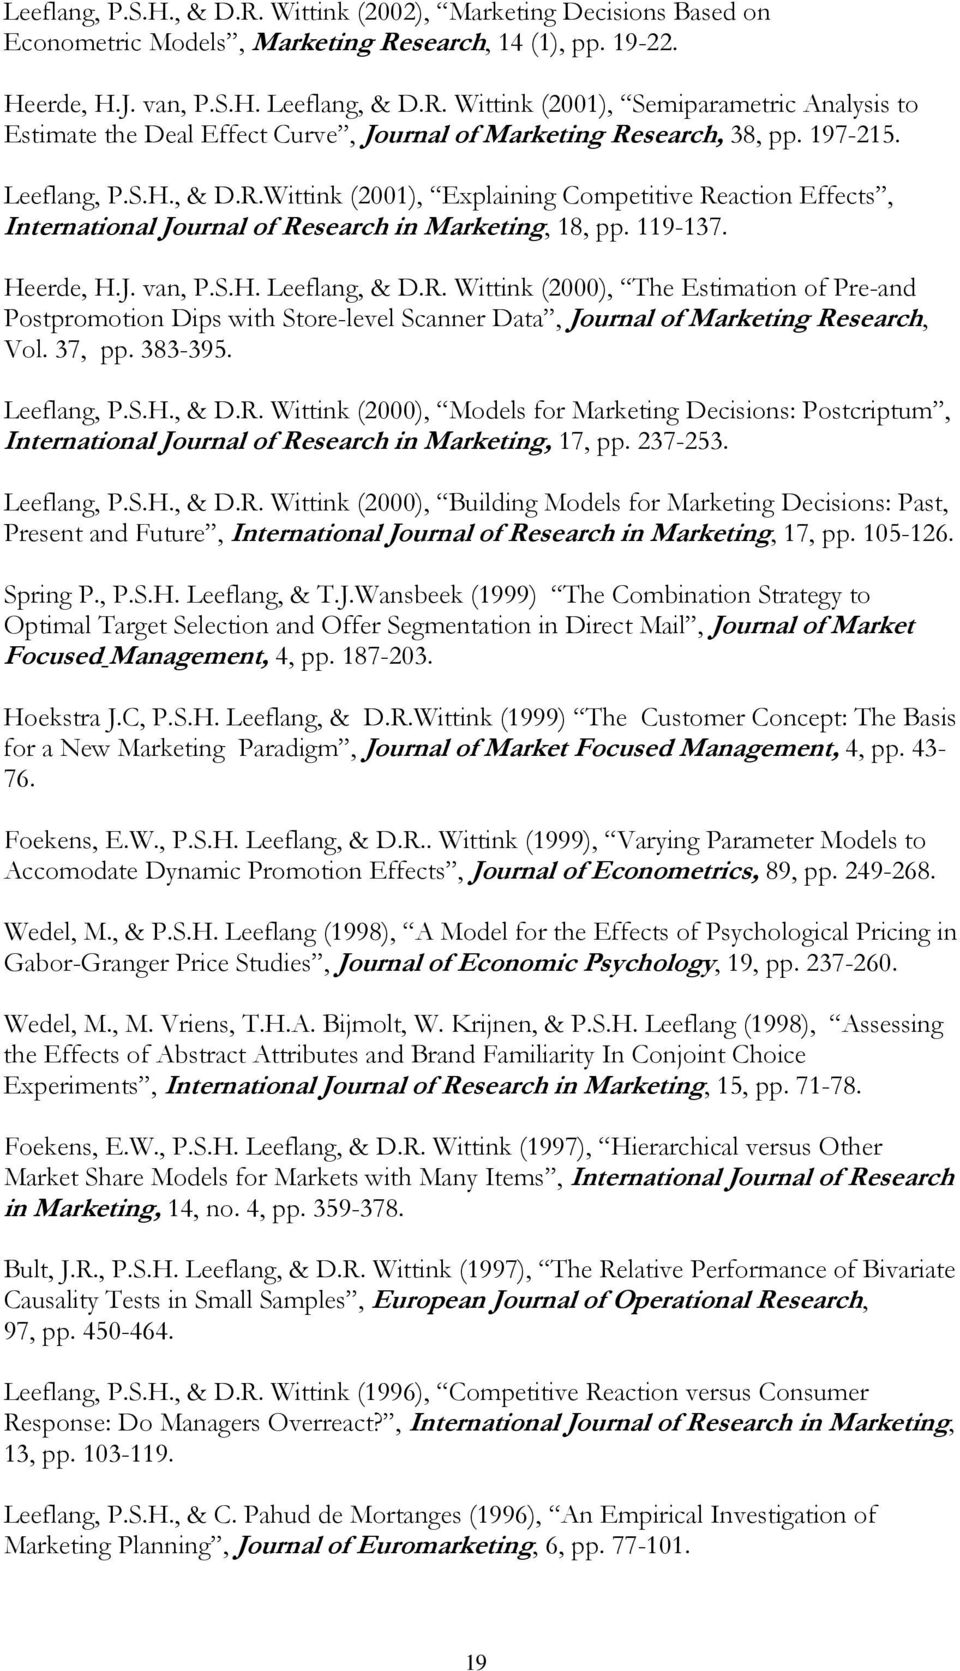 37, pp. 383-395. Leeflang, P.S.H., & D.R. Wittink (2000), Models for Marketing Decisions: Postcriptum, International Journal of Research in Marketing, 17, pp. 237-253. Leeflang, P.S.H., & D.R. Wittink (2000), Building Models for Marketing Decisions: Past, Present and Future, International Journal of Research in Marketing, 17, pp.